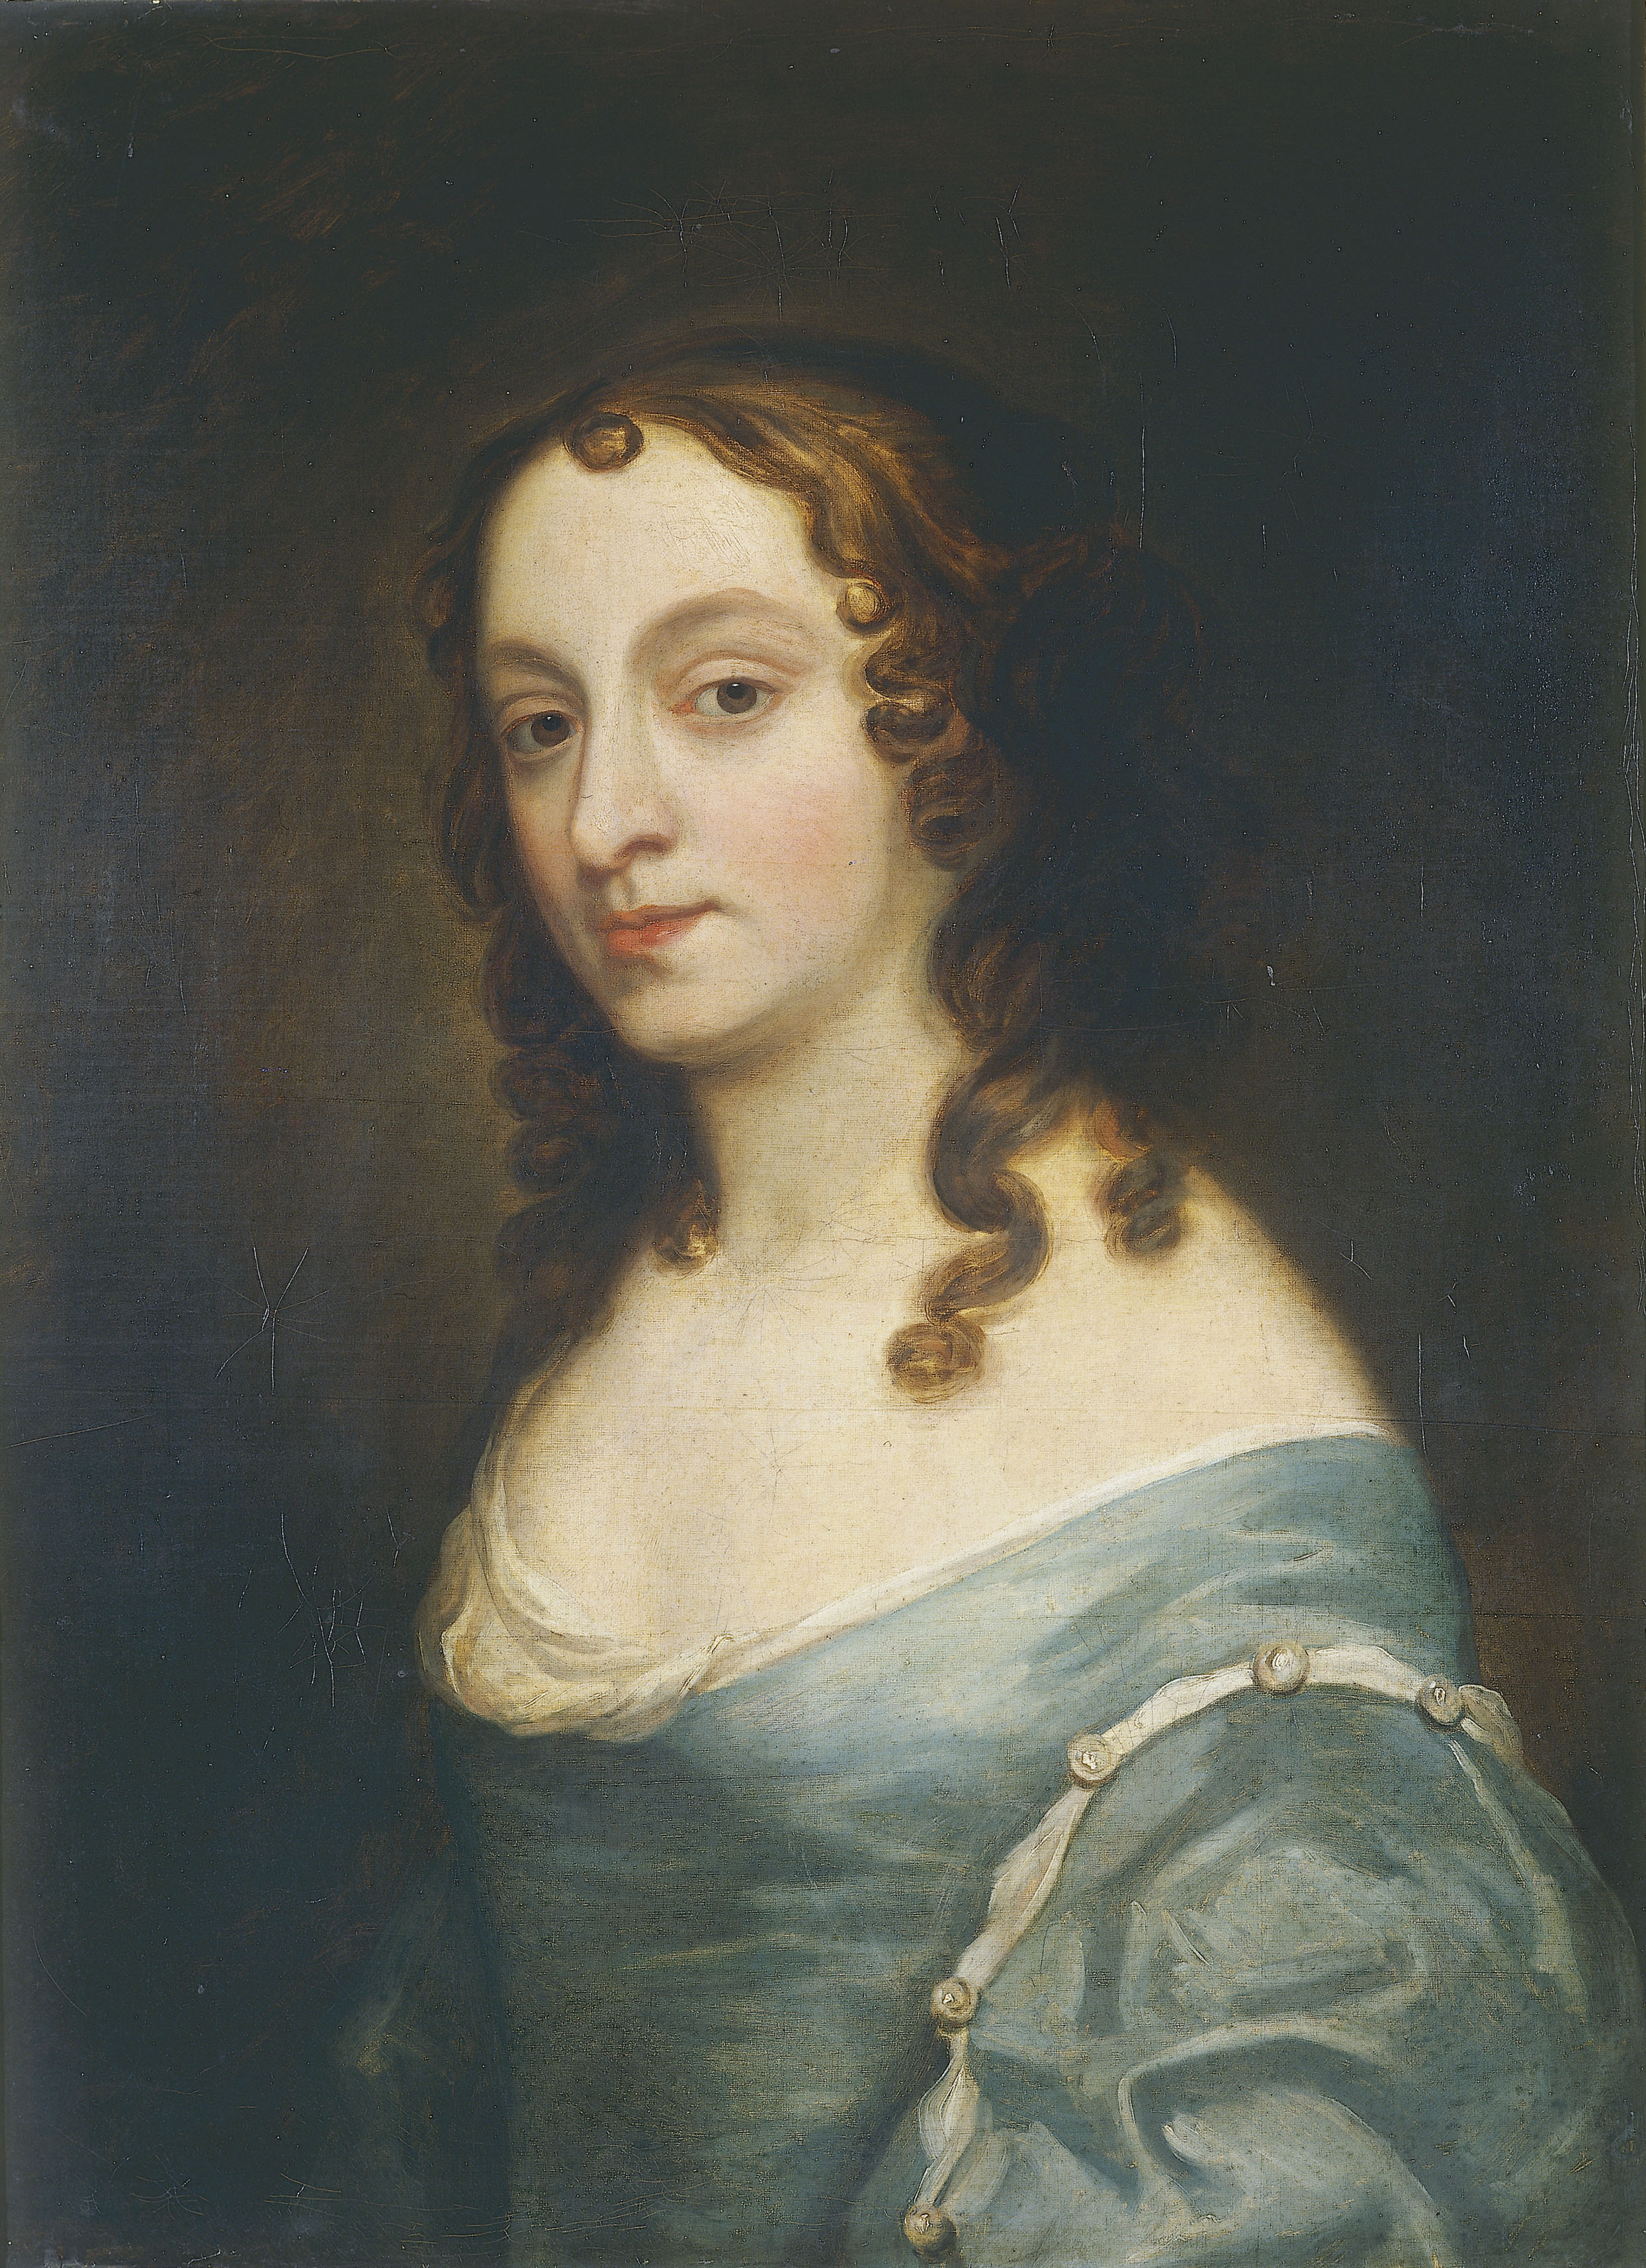 Portrait of Elizabeth Claypole (Cromwell), circle of Sir Peter Lely, c. 1655, Oil on Canvas. thumbnail